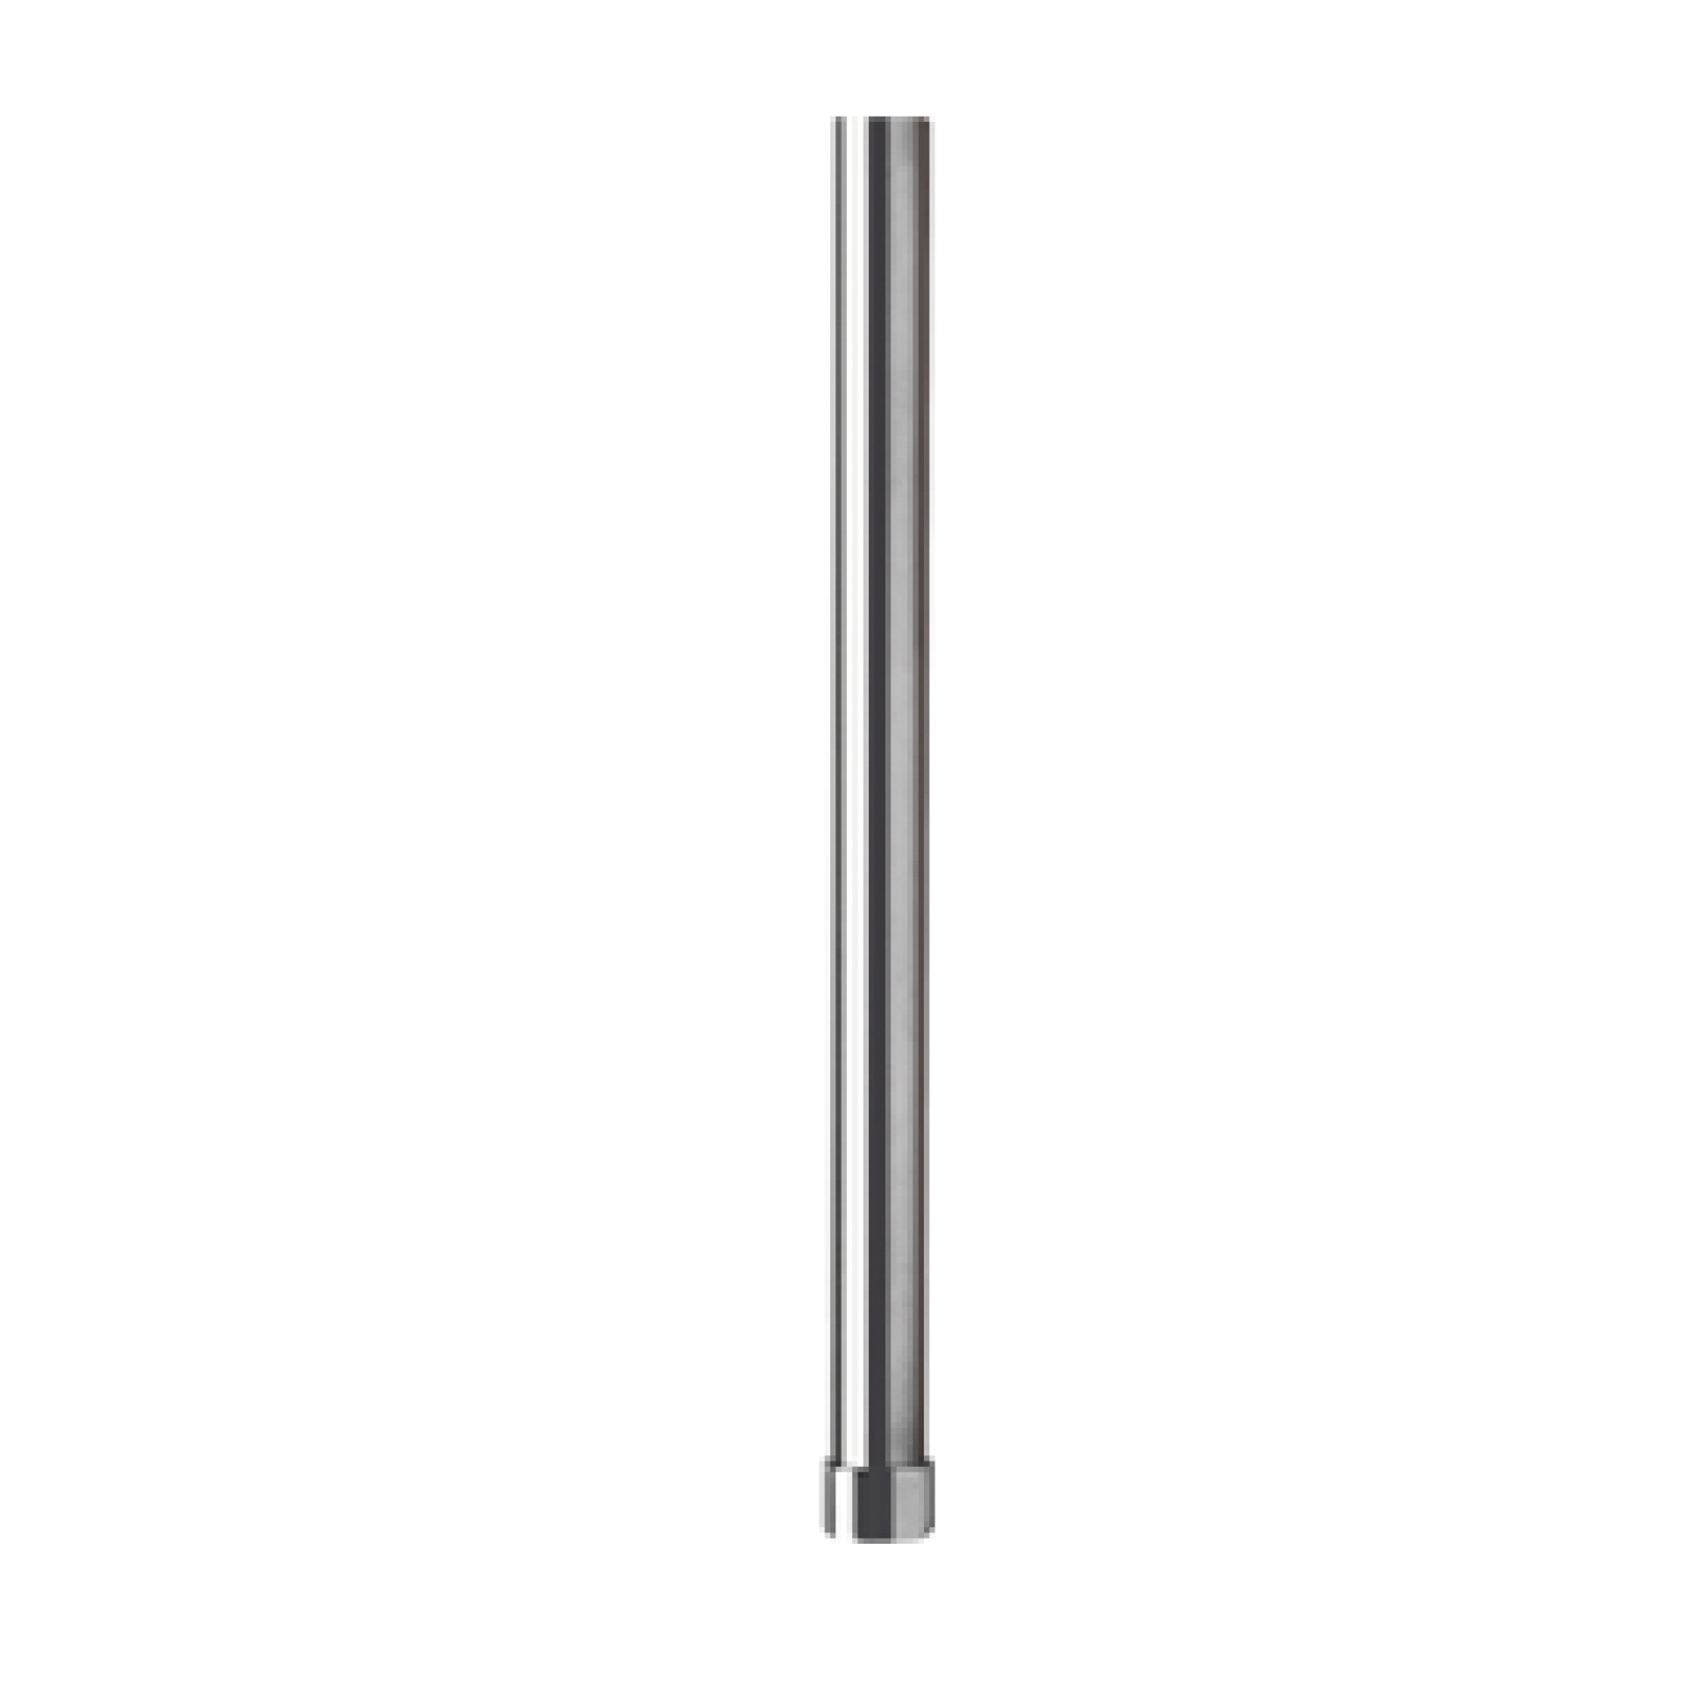 304L Stainless Steel SCH 40 Pipe, 1/4 in, Import